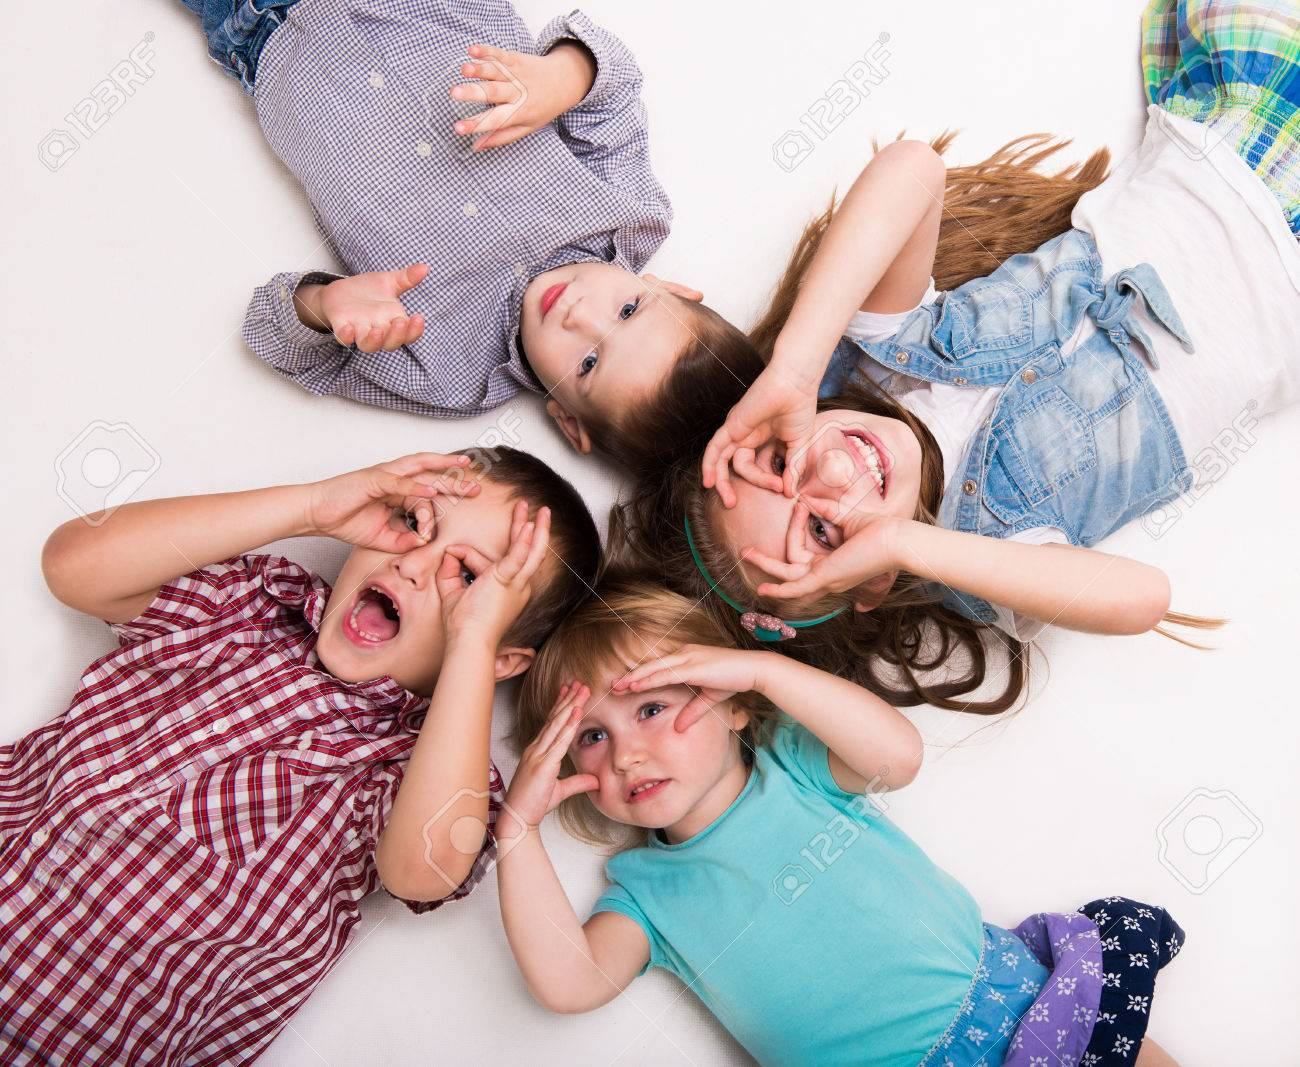 children lying on the floor with hands imitating glasses isolated on white background - 52204373